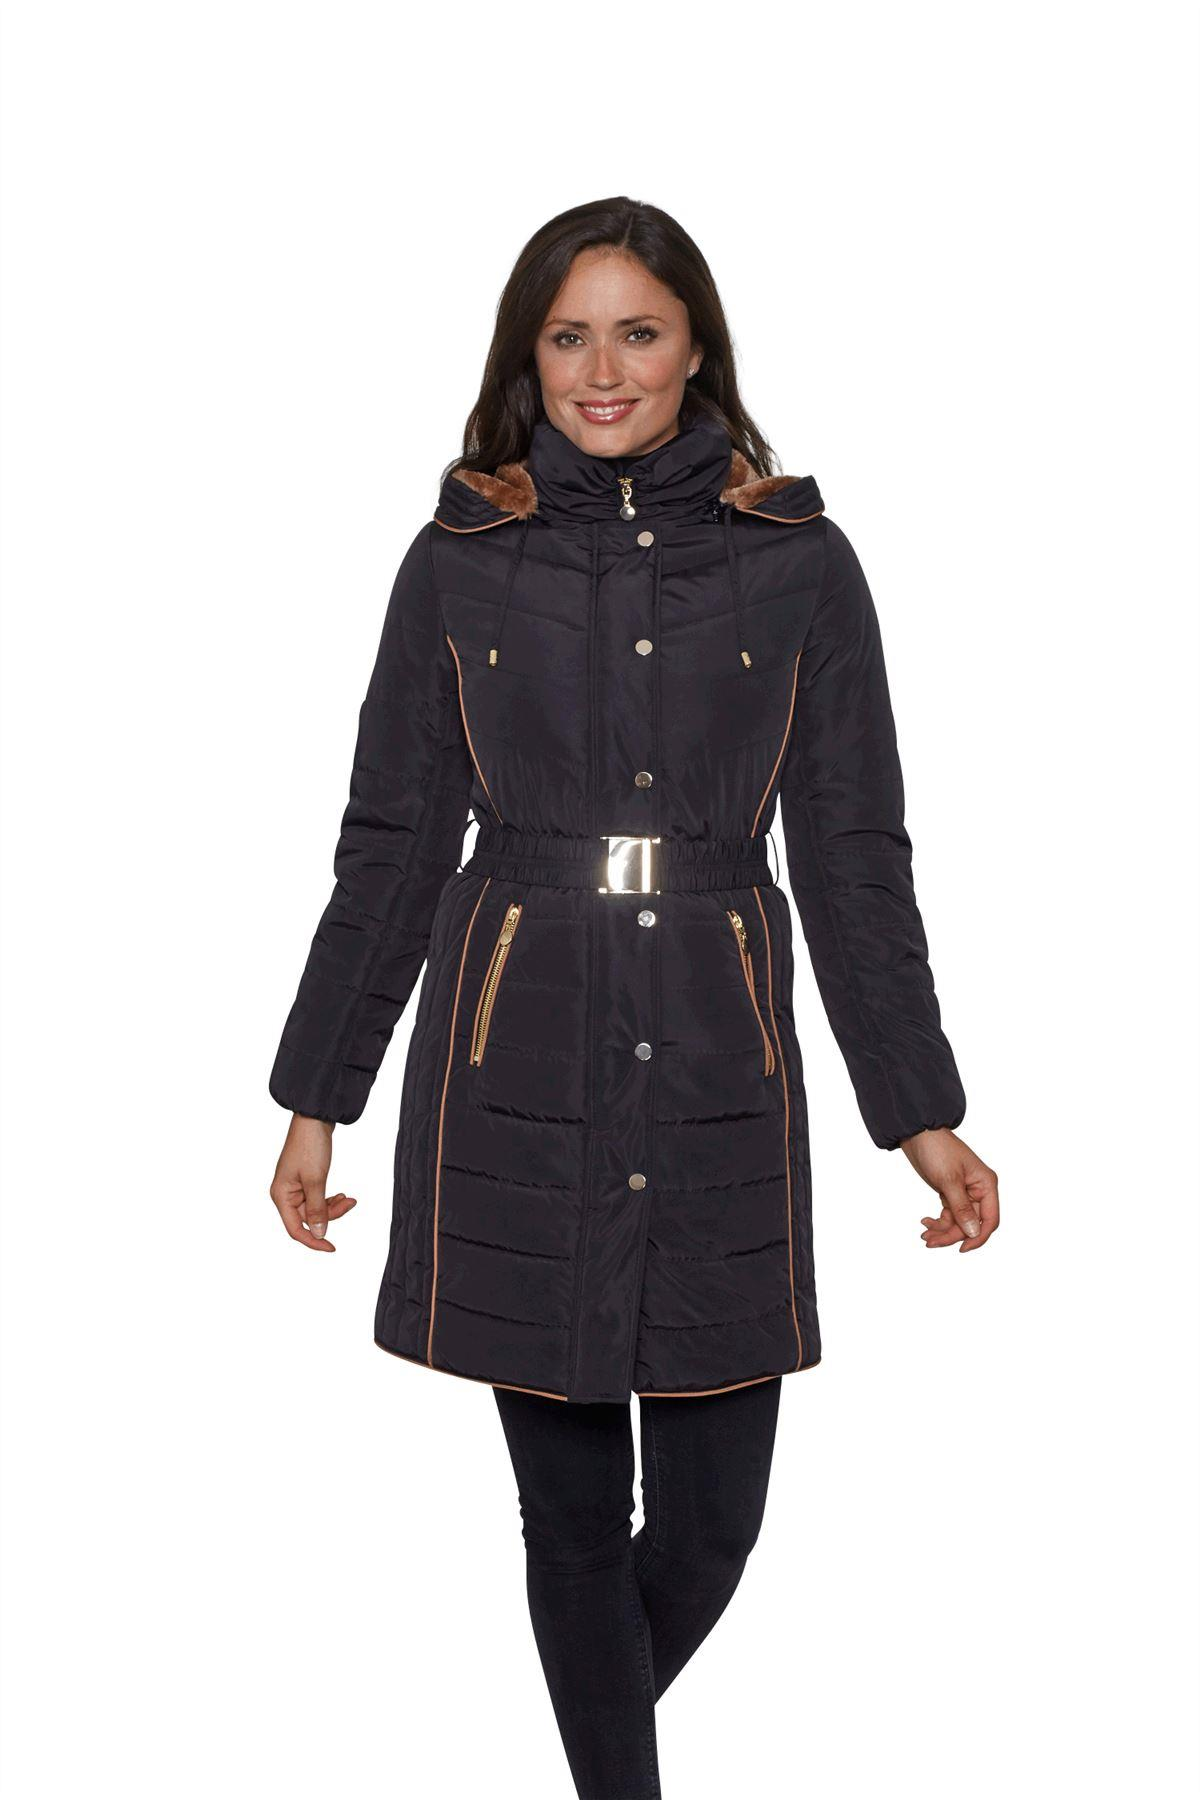 David Barry Womens Belted Padded Warm Winter Coat